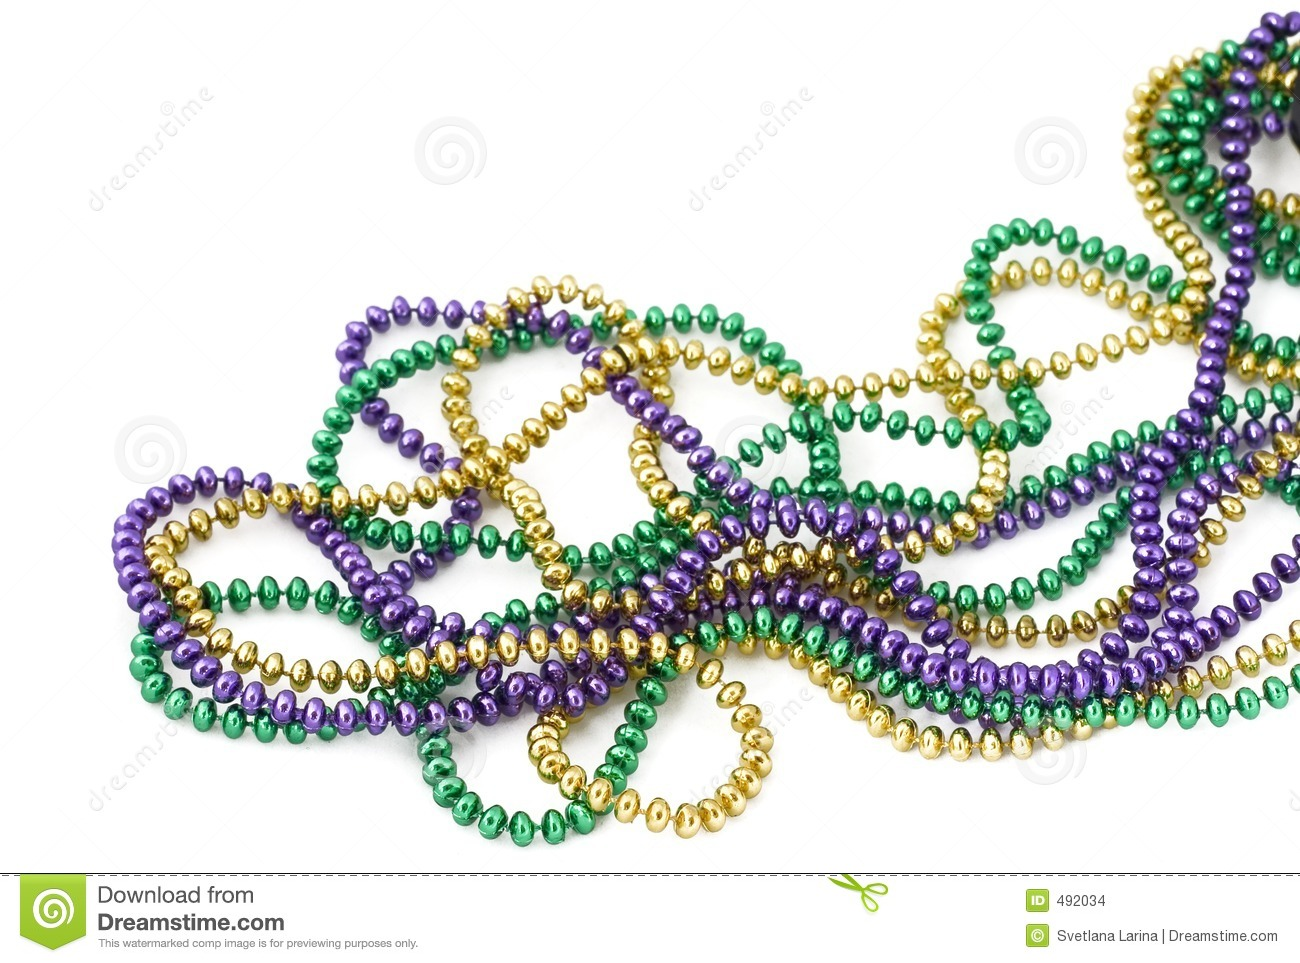 gras a party mardi image stock theme masquerade in vector masks beads background and carnival